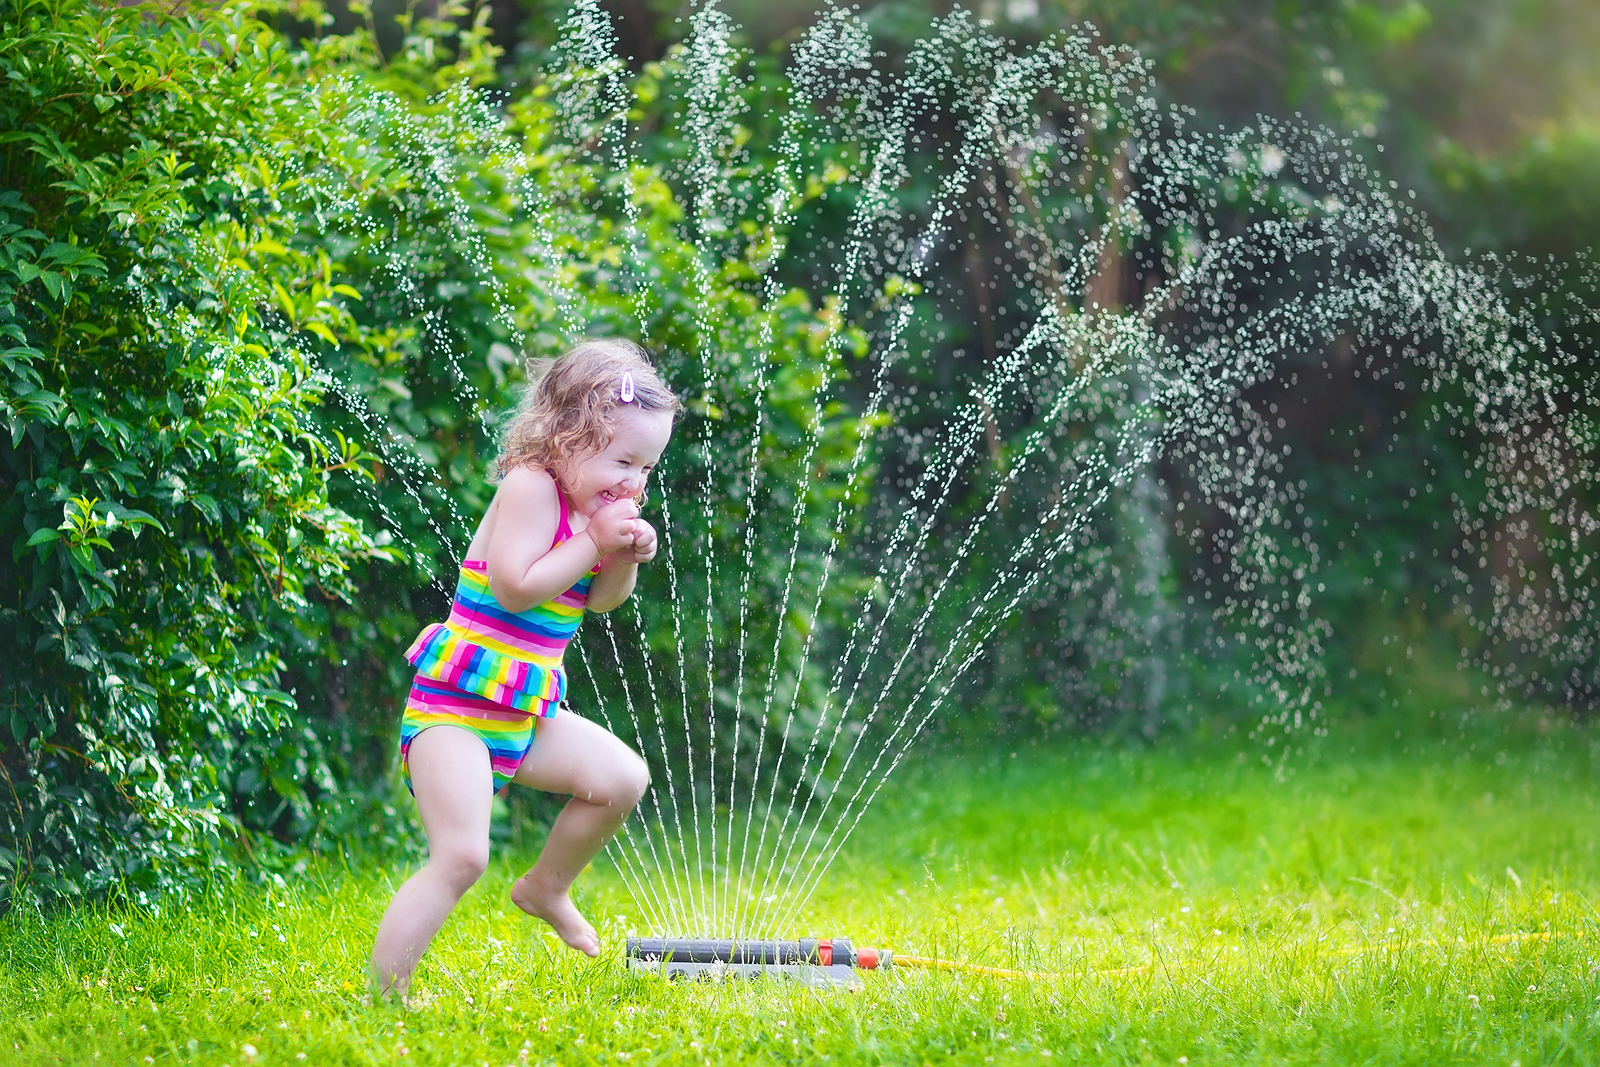 Here are some awesome (and affordable) water games you can try.